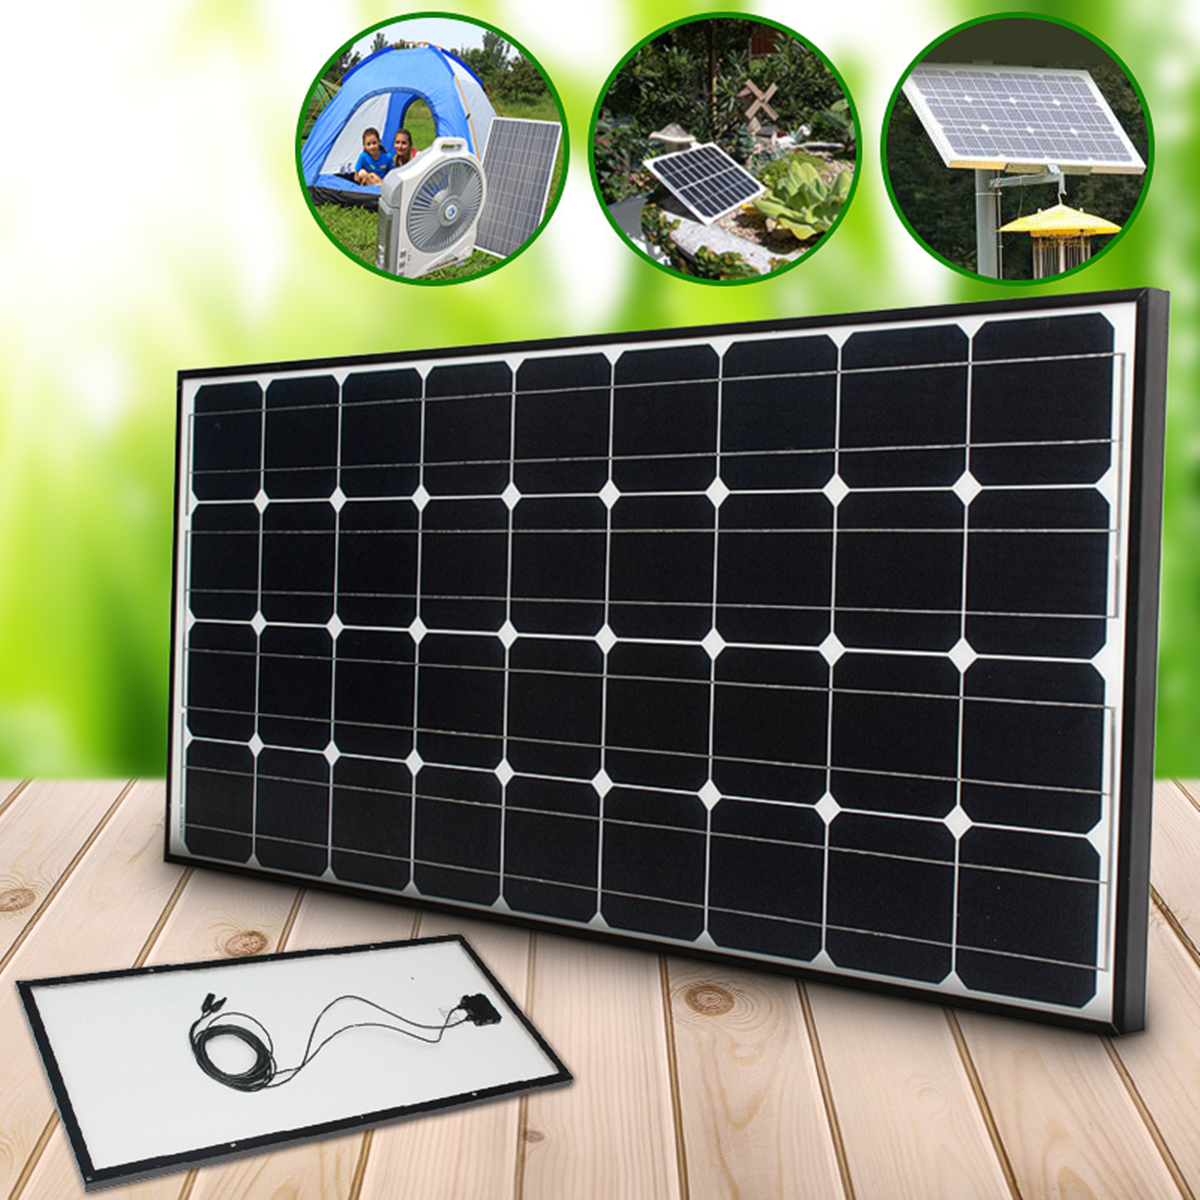 CLAITE 100W Solar Panel 18V 100W Solar Charger For Car Battery 12V Battery Charger Monocrystalline Cells Module Kit For Camping leory 5w 18v solar panel monocrystalline waterproof multi purpose solar cells charger for mobilephone cars boat motorcycle